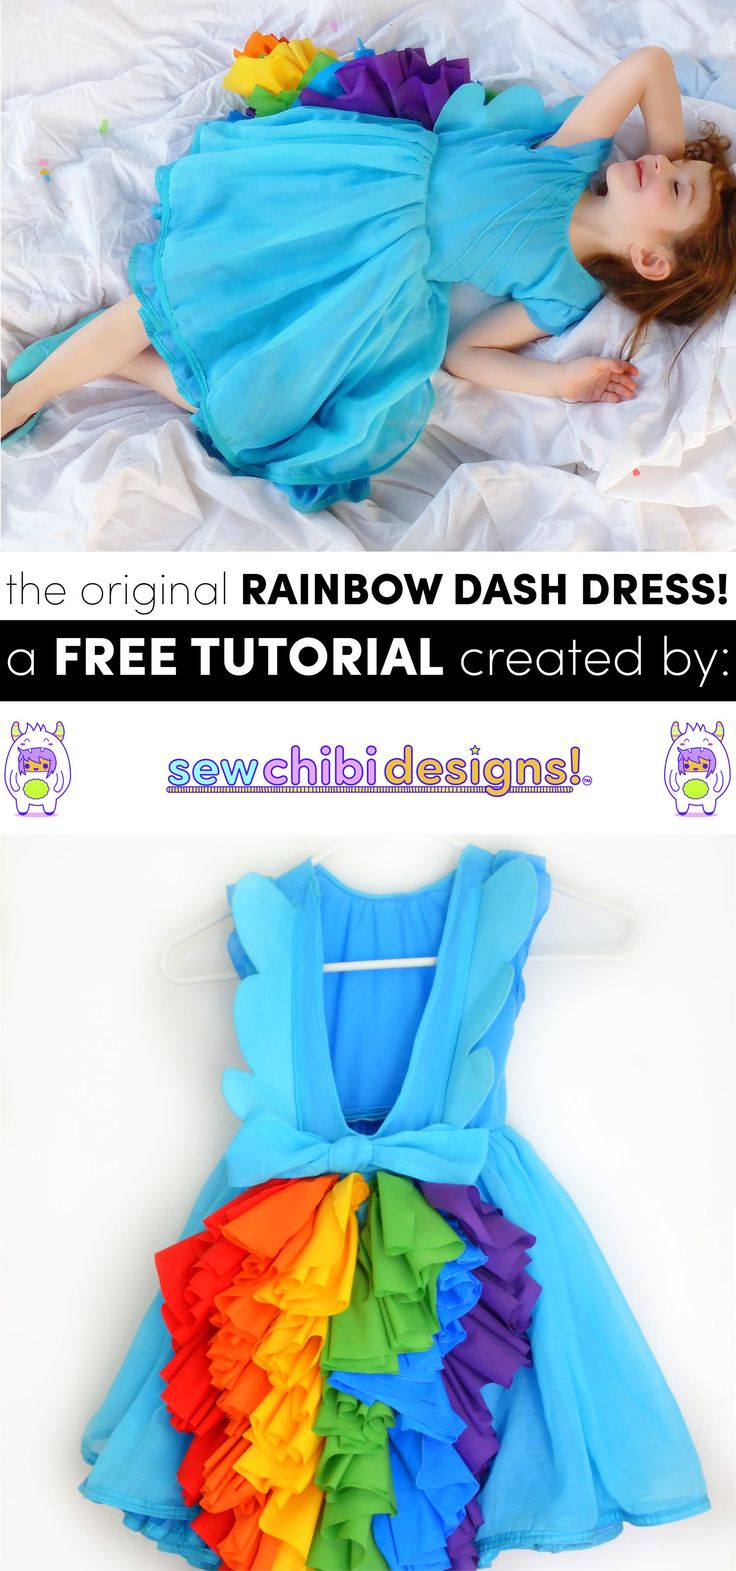 Got a little girl who LOVES My Little Pony? Obsessed with Rainbow Dash, Twilight, Fluttershy, Applejack, Rarity, or Pinkie Pie? With this FREE WING PATTERN AND TUTORIAL I'll walk you through, step-by-step, on how to MAKE YOUR OWN! This is the original Rainbow Dash Dress Tutorial but with new fresh look and easy to follow images! Change the tail colors to match your kiddo's favorite pony! Click here to pop on over to the newly redesigned SEW CHIBI DESIGNS now!!!